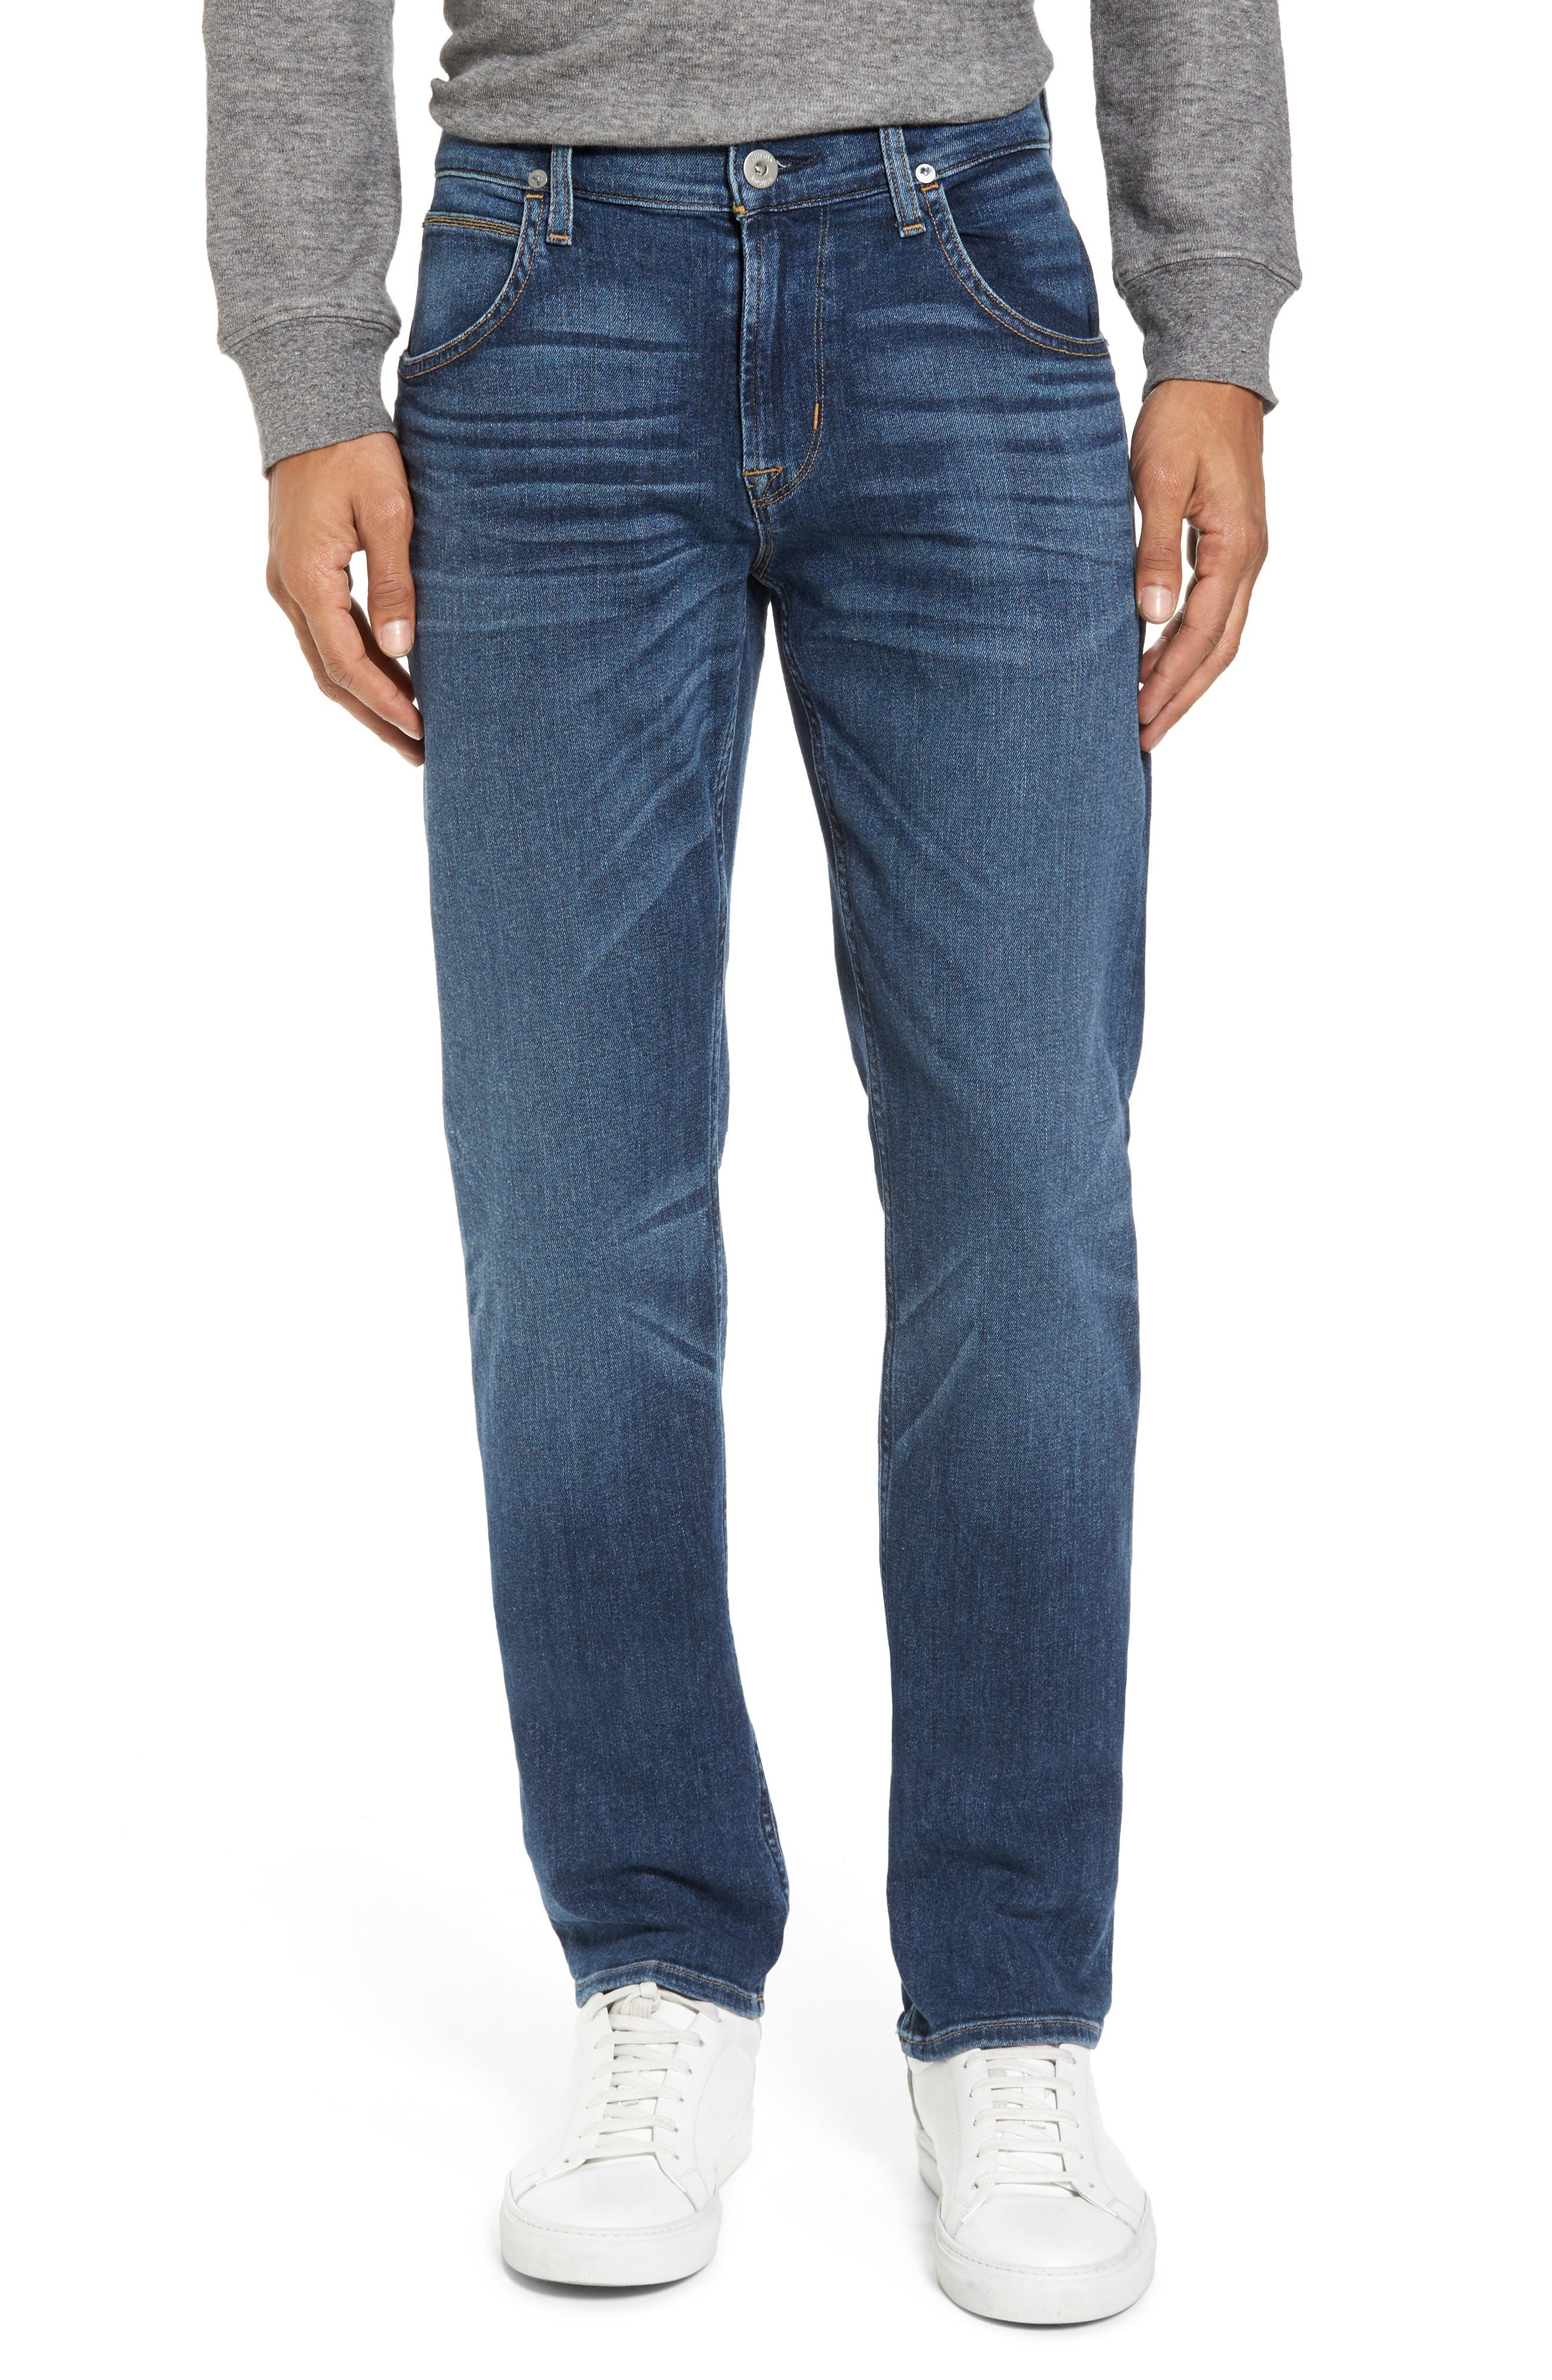 Blake Slim Fit Jeans,                             Main thumbnail 1, color,                             420